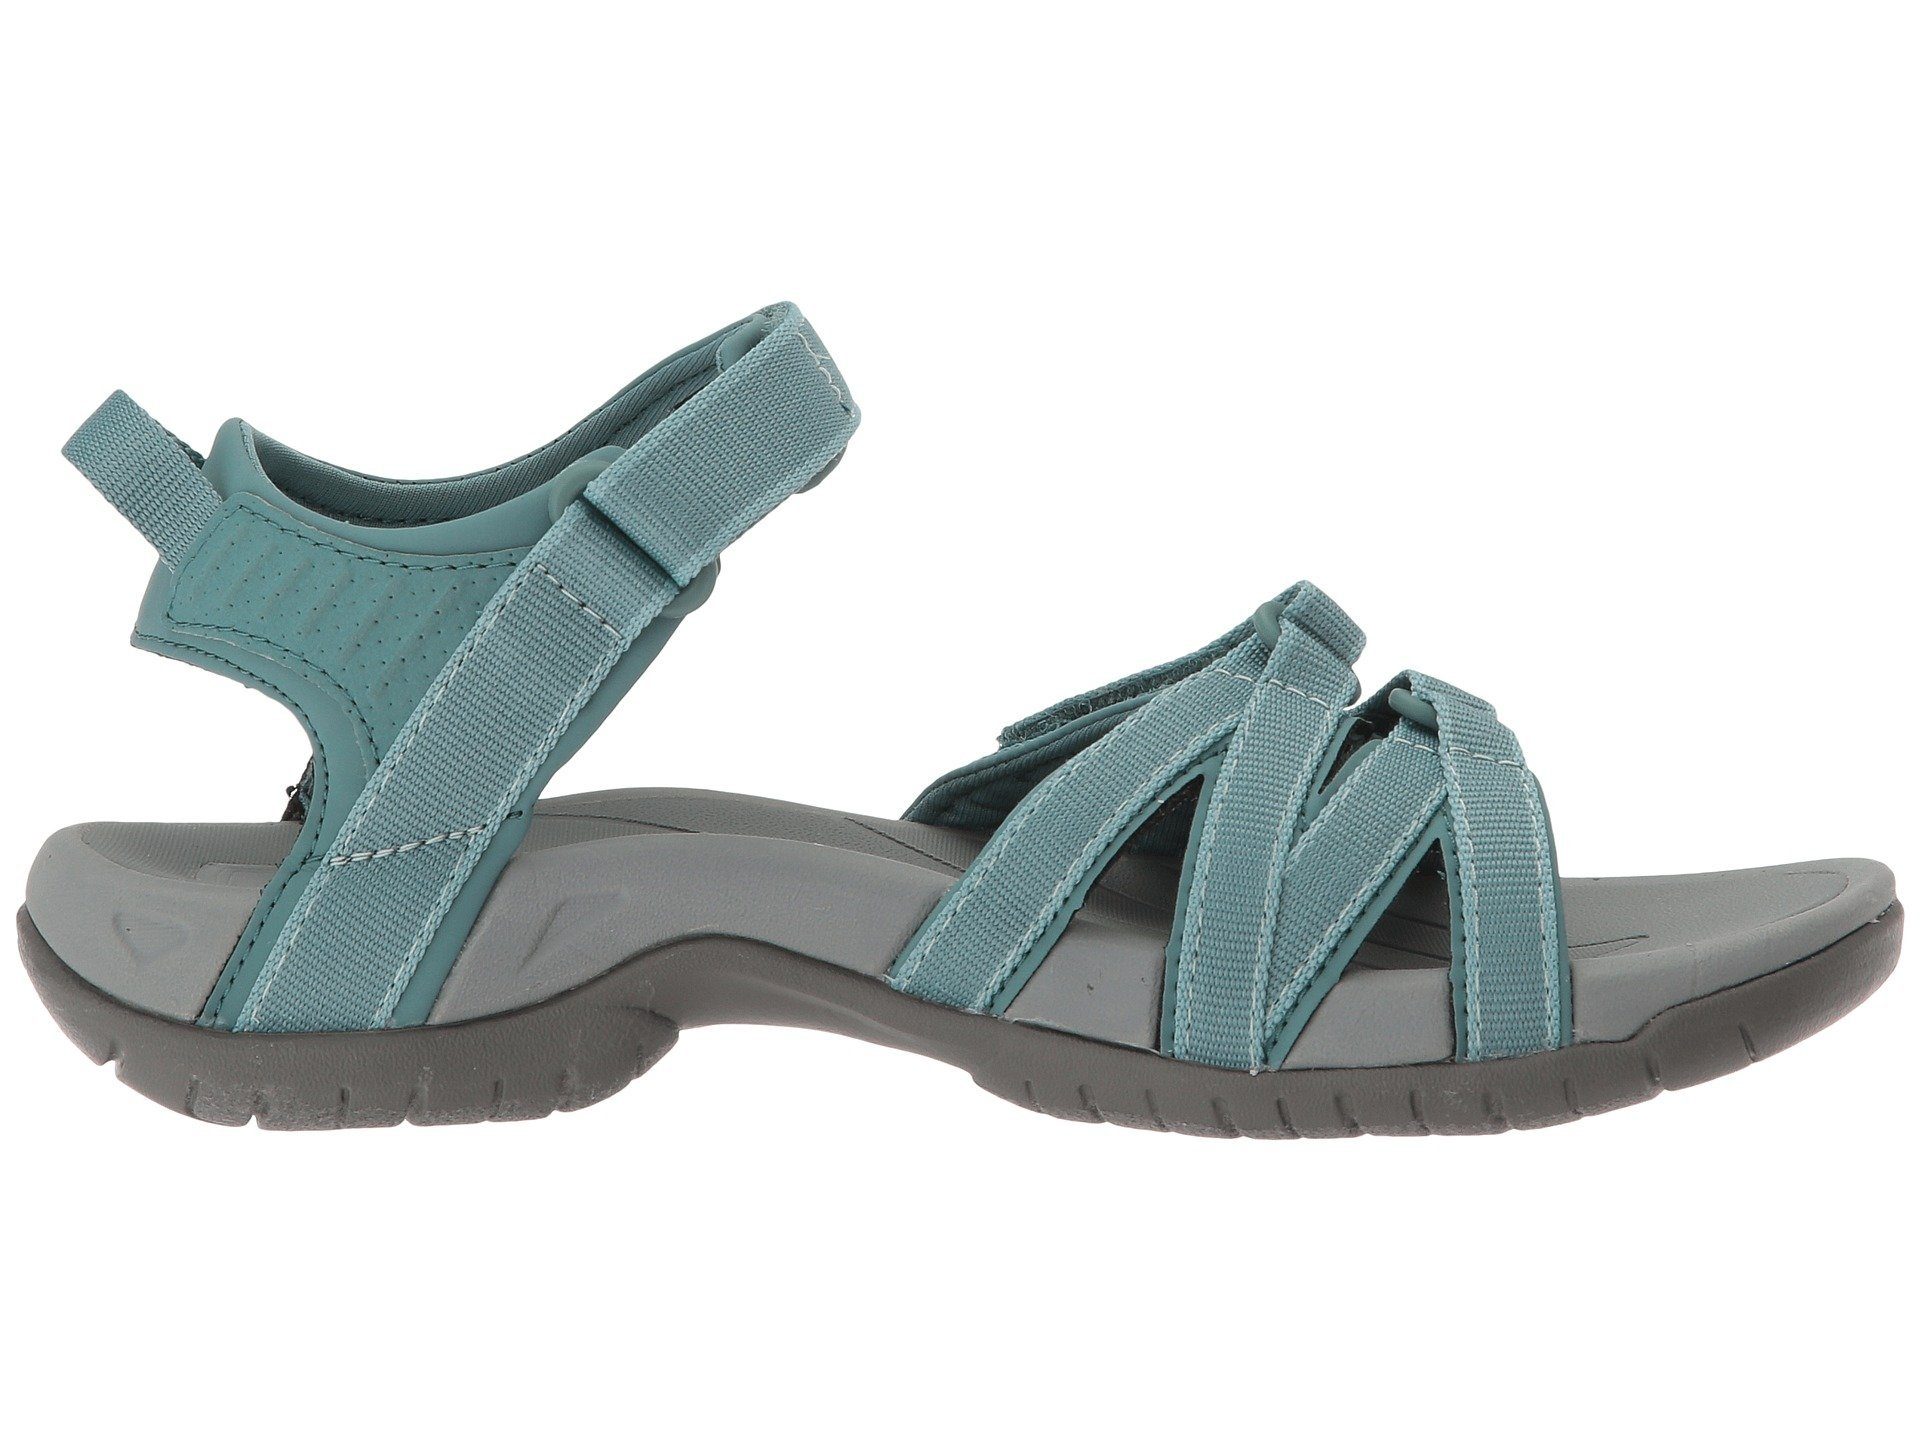 Teva Tirra Sandal Women's Hiking 8 North Atlantic by Teva